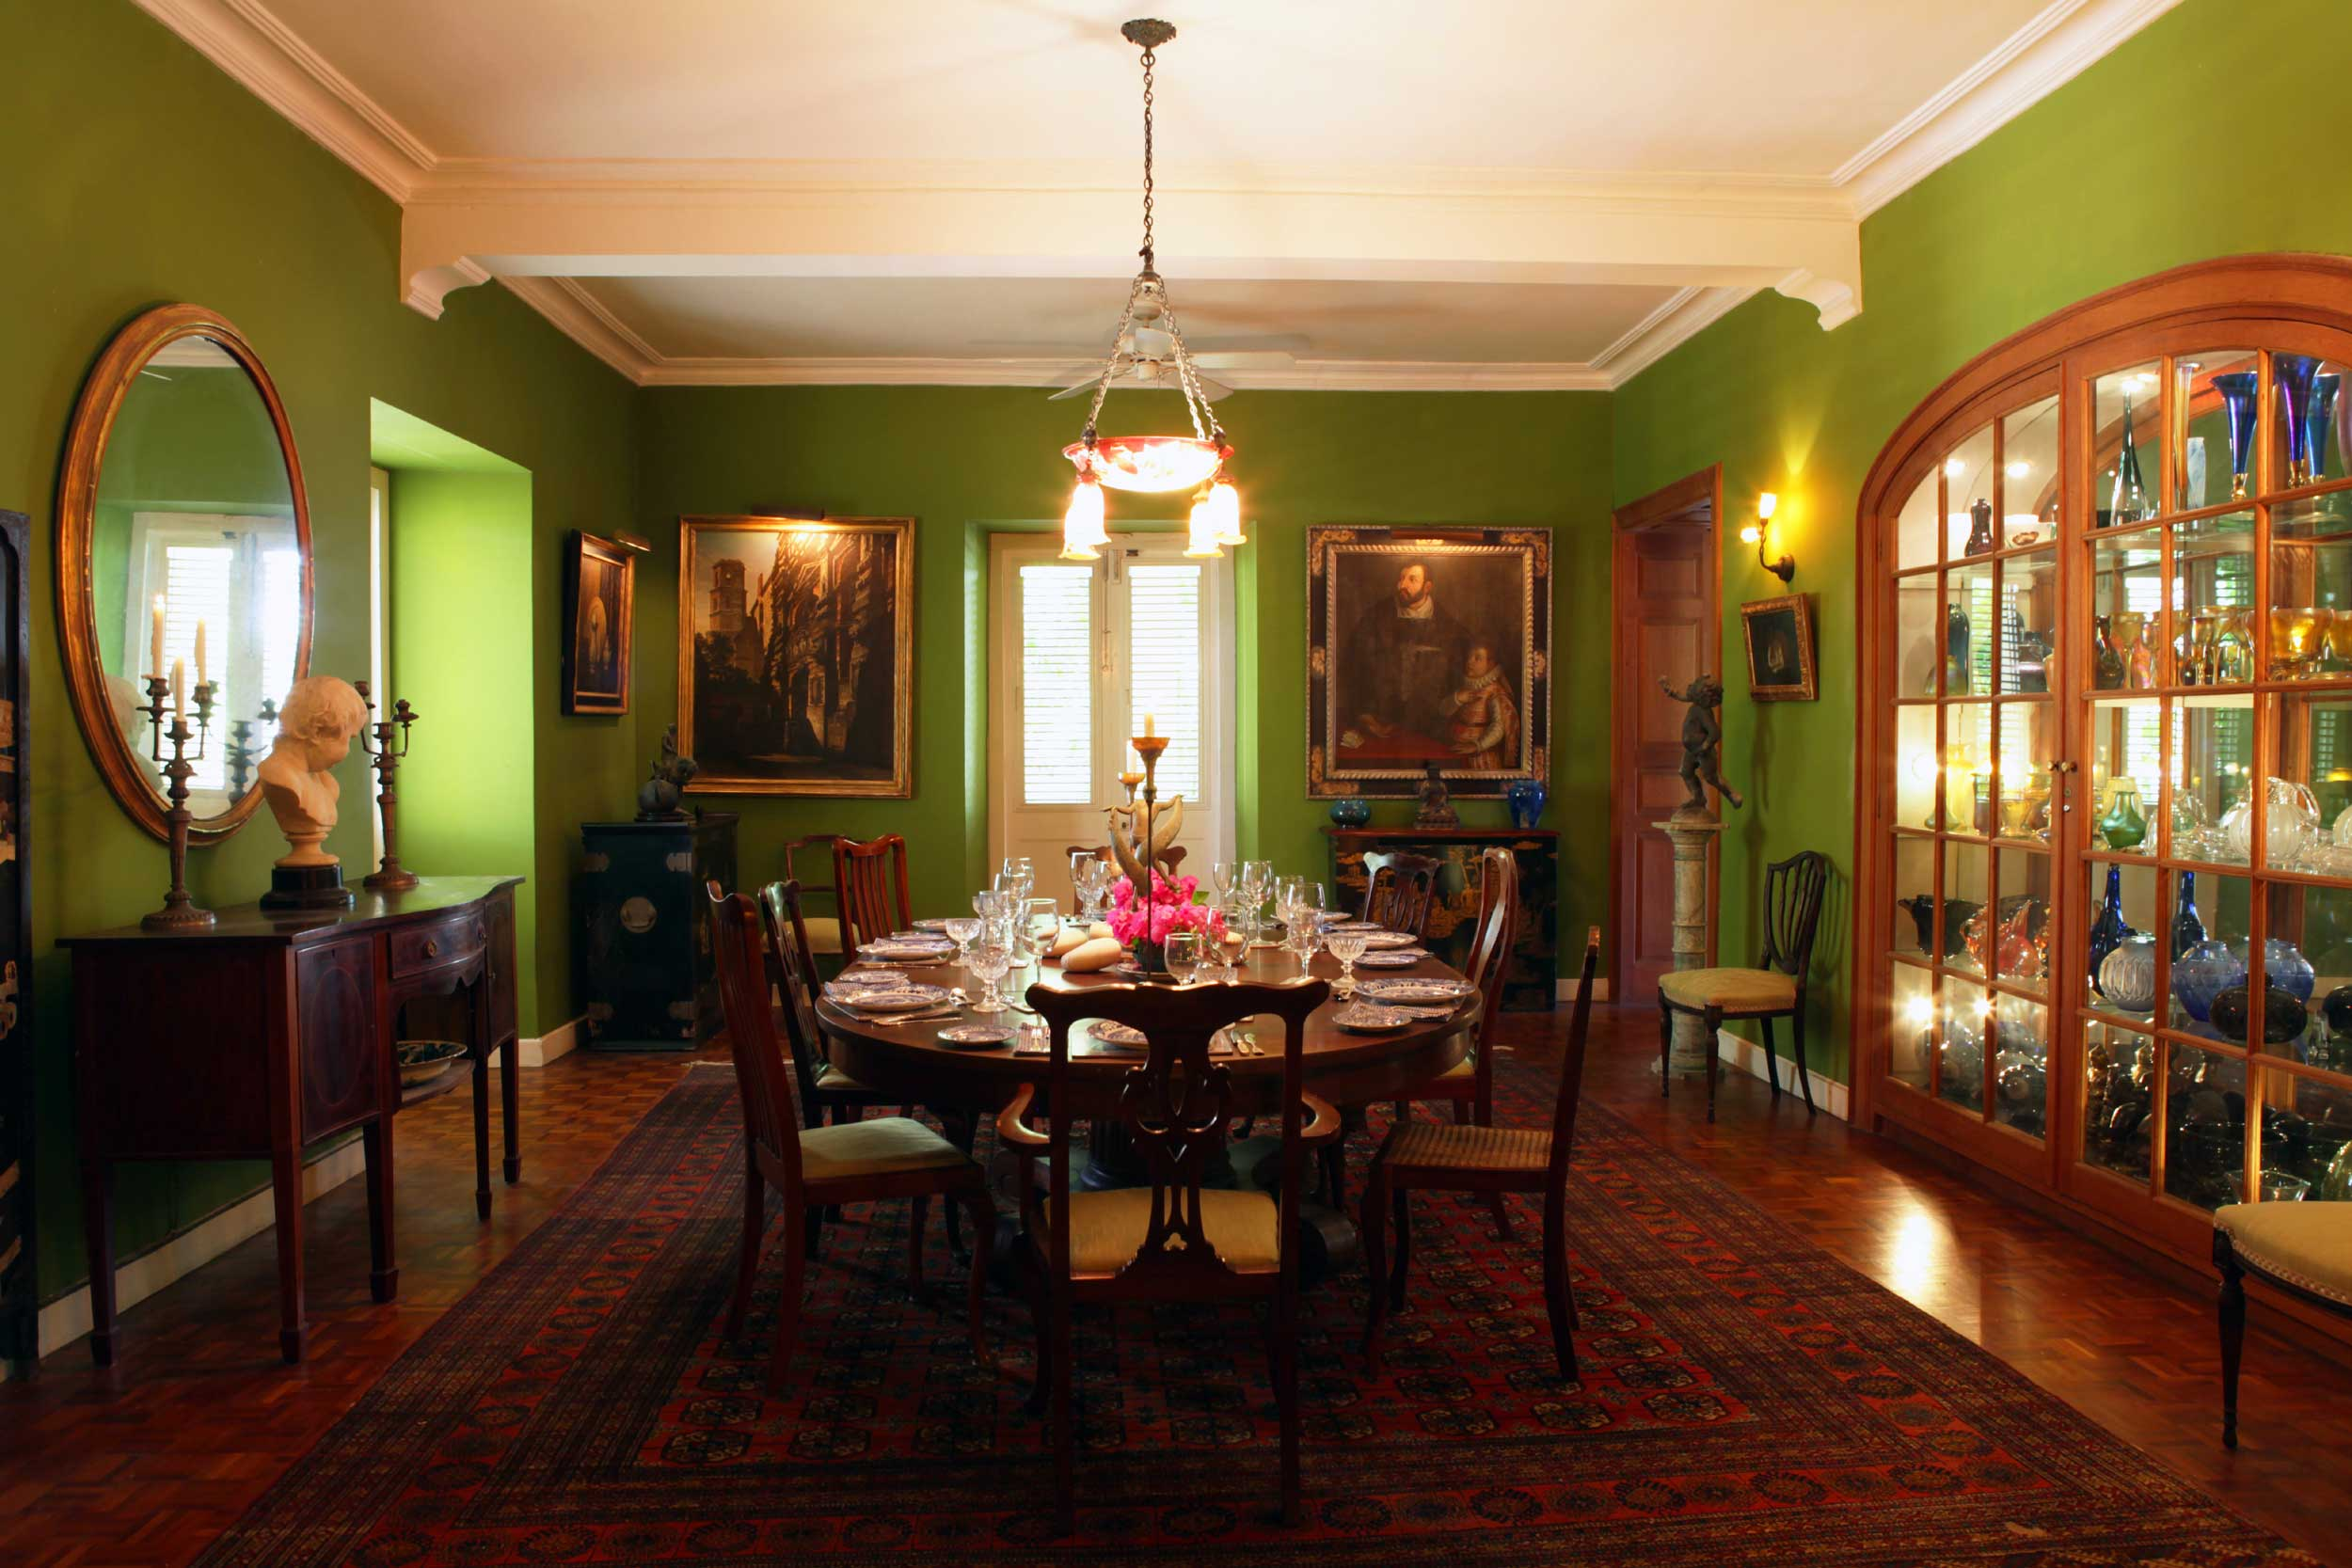 Colleton's grandly proportioned reception rooms could just as easily belong to an estate in English countryside than in a plantation house on an exotic tropical isle. The unusual color palette in the formal dining room creates a sense of drama and tranquility in equal measure.